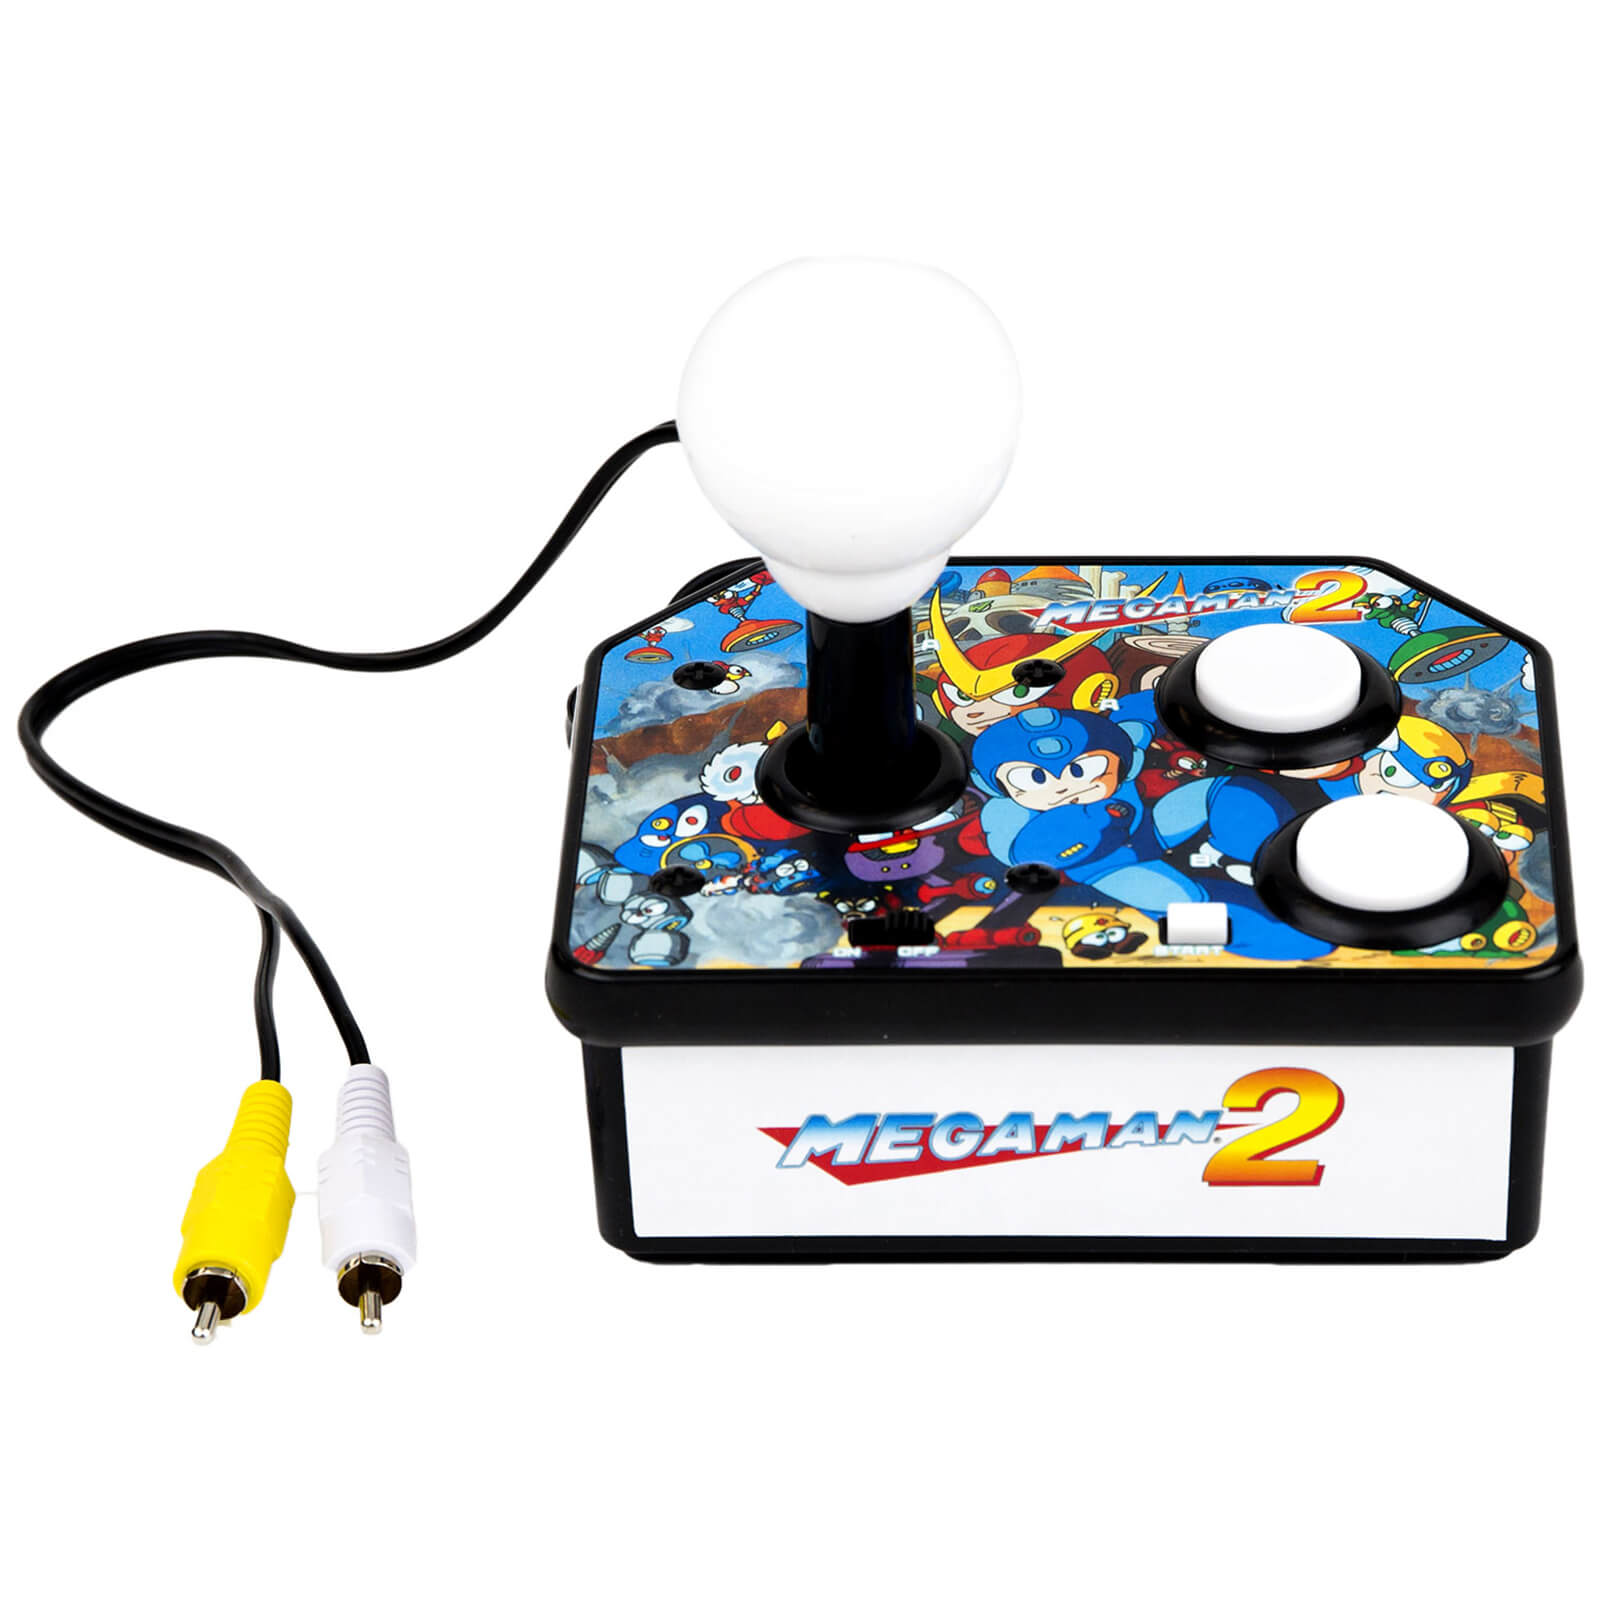 Mega Man 2 TV Arcade Plug & Play